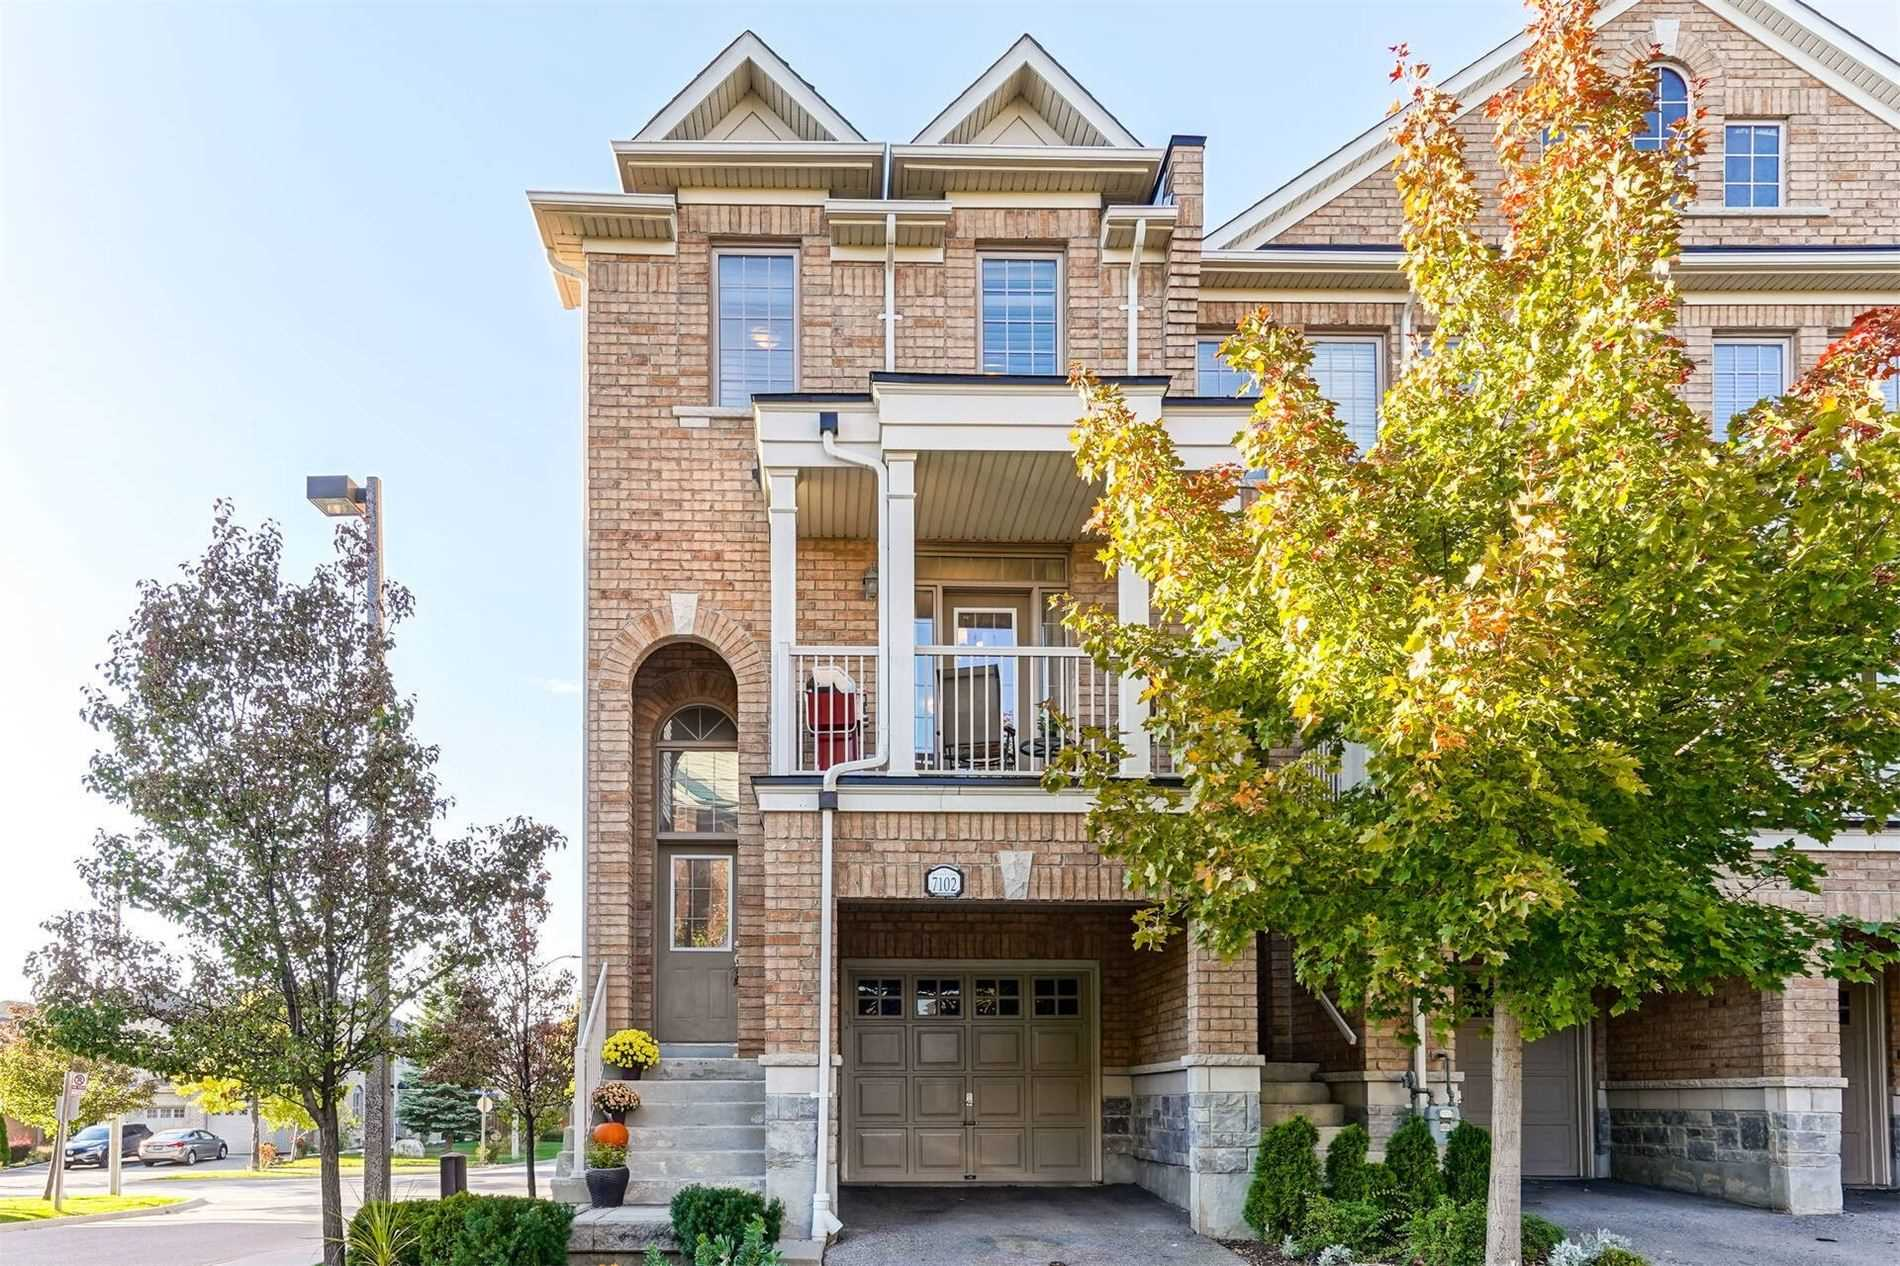 For Sale: 7102 Triumph Lane, Mississauga, ON | 3 Bed, 3 Bath Townhouse for $689000.00. See 36 photos!